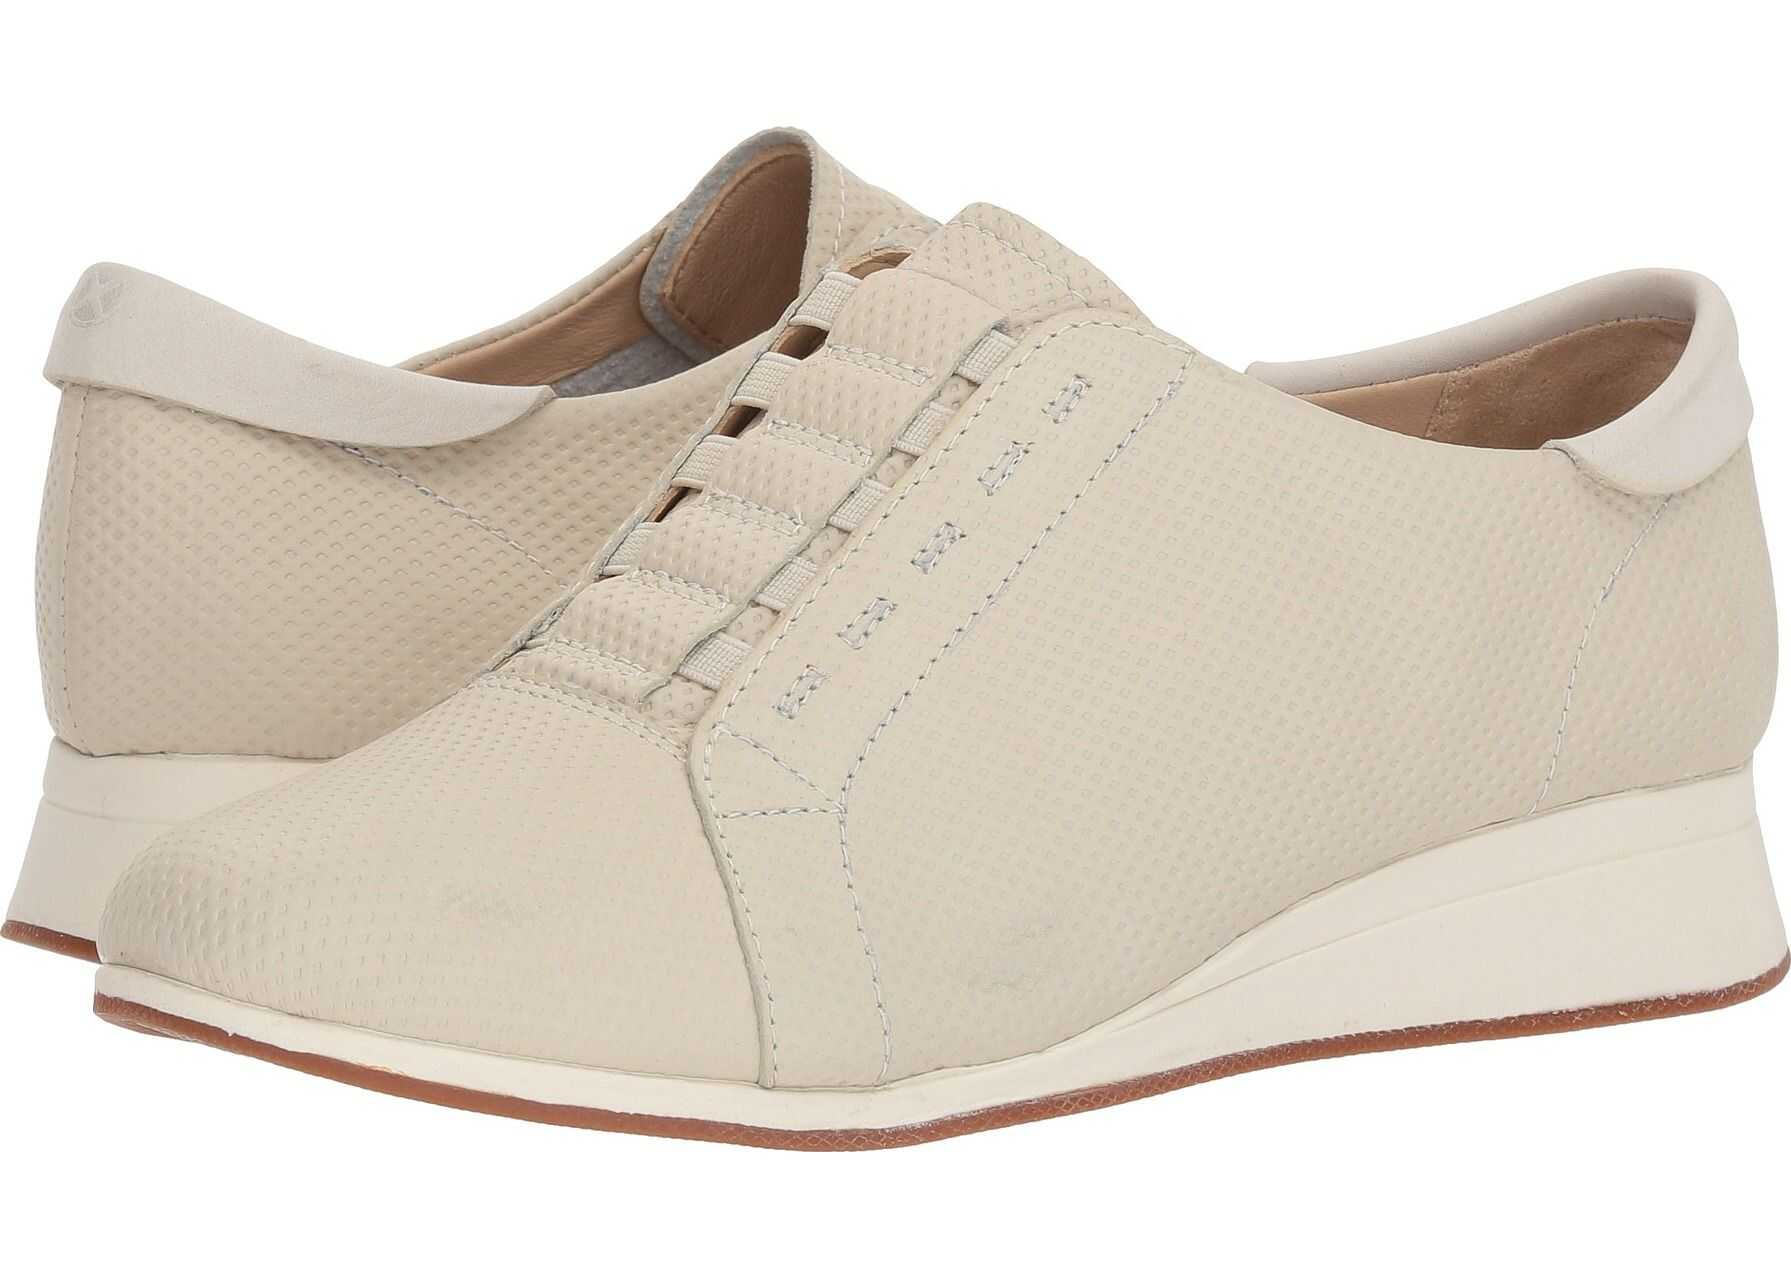 Hush Puppies Evaro Slip-On Oxford Ivory Embossed Leather